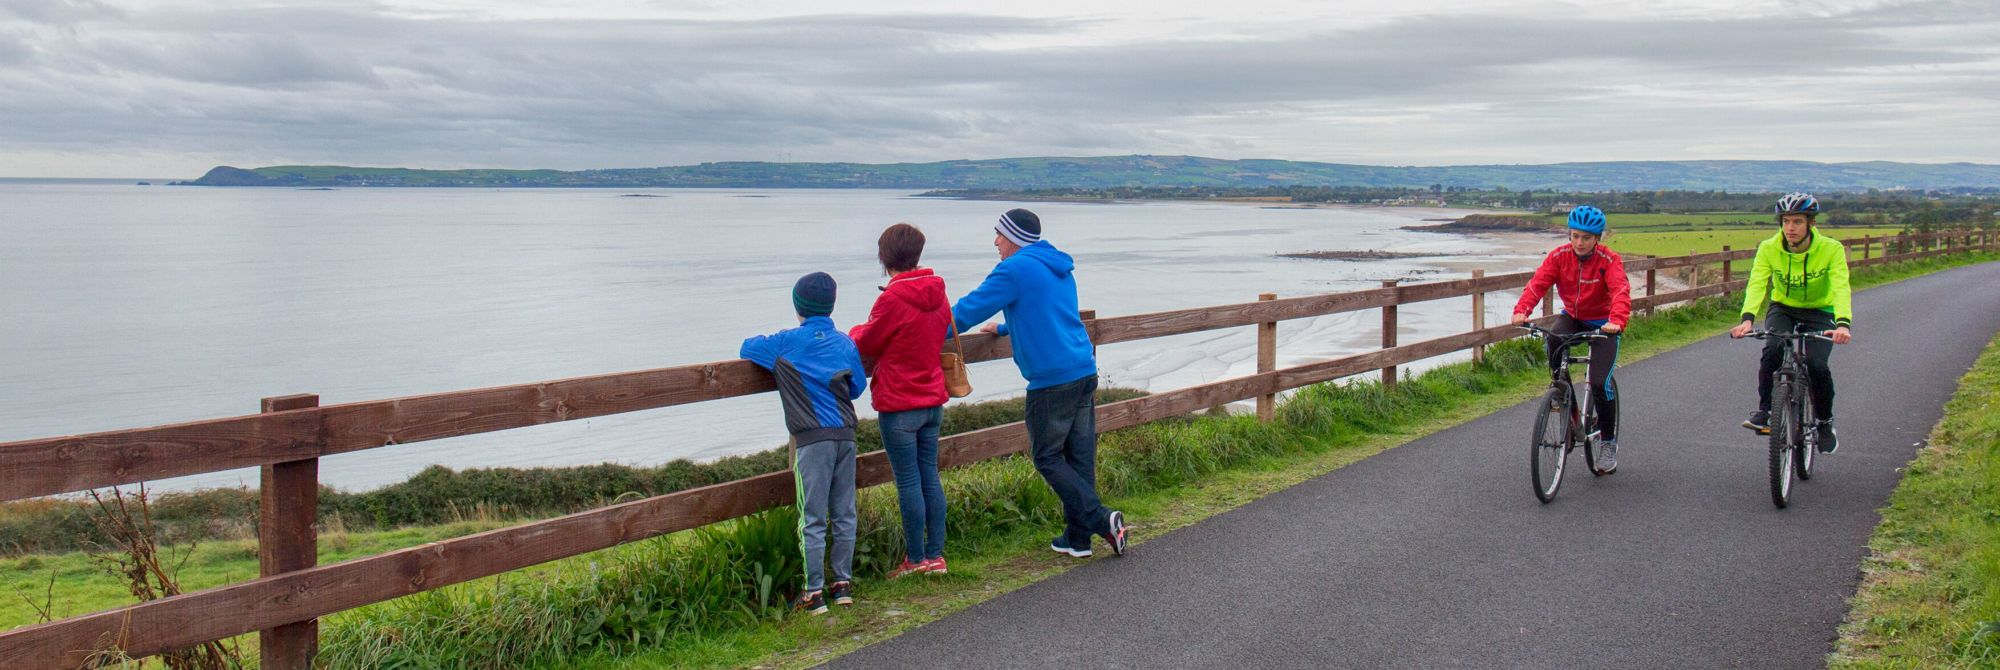 Enjoy the Waterford Greenway